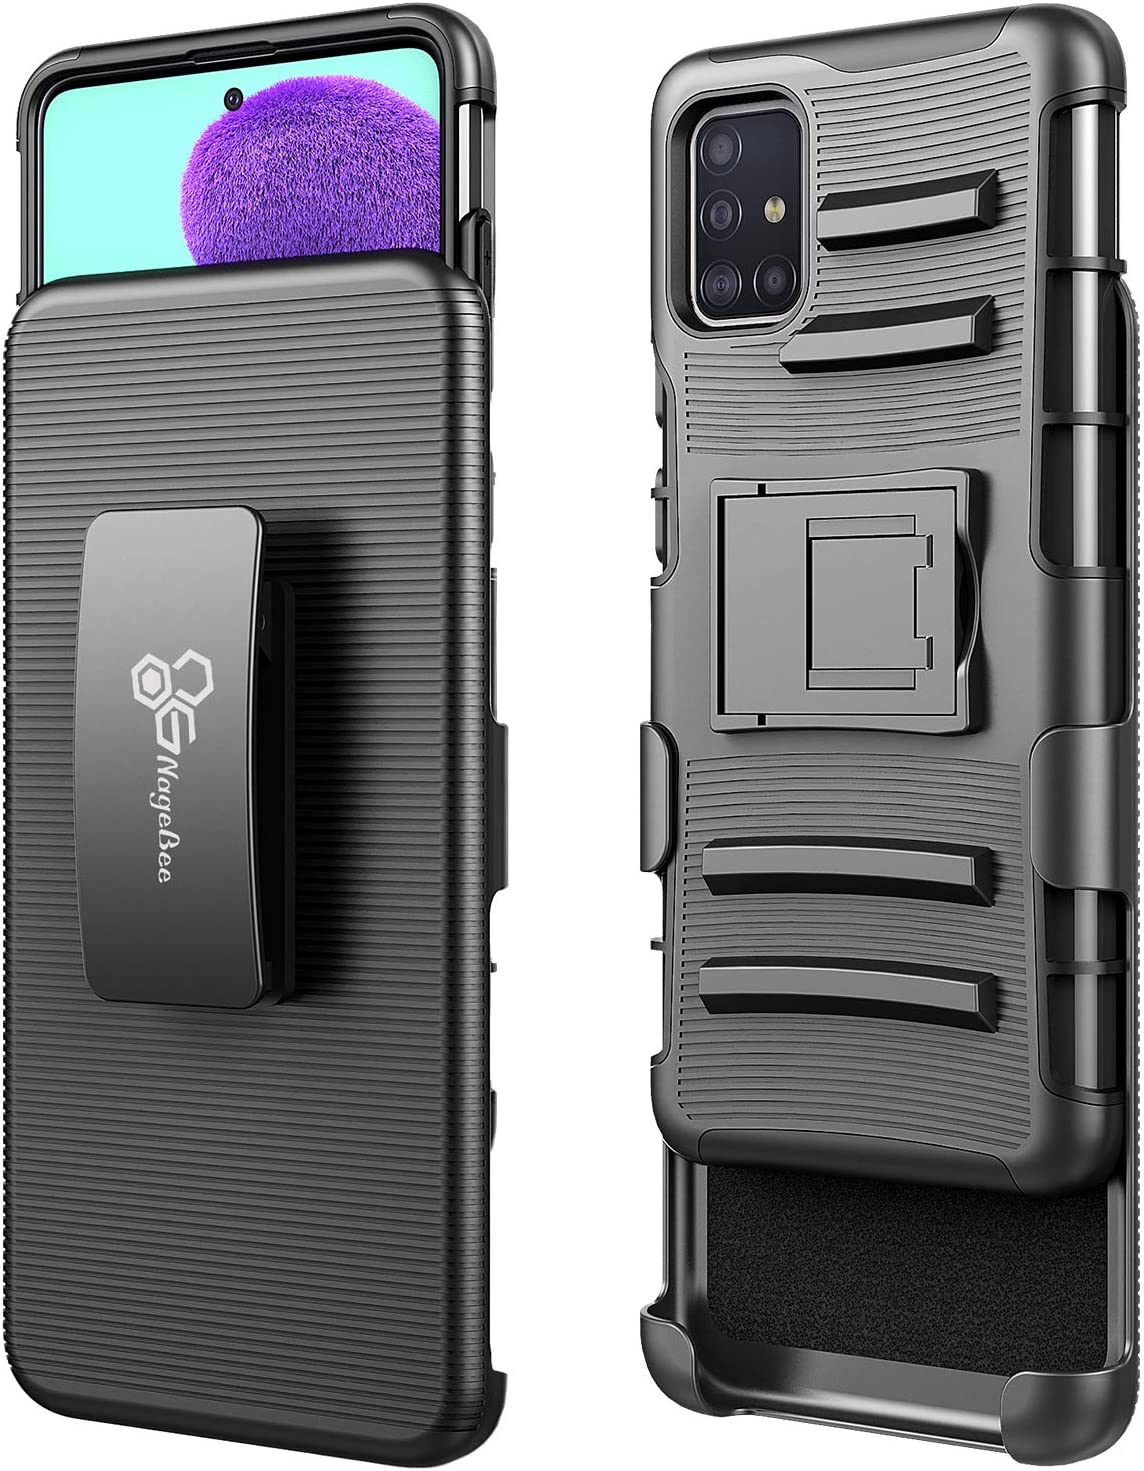 Not Fit A71 4G Black Full Coverage with Tempered Glass Screen Protector E-Began Case for Samsung Galaxy A71 5G Belt Clip Holster w//Kickstand Heavy Duty Armor Defender Shockproof Rugged Case